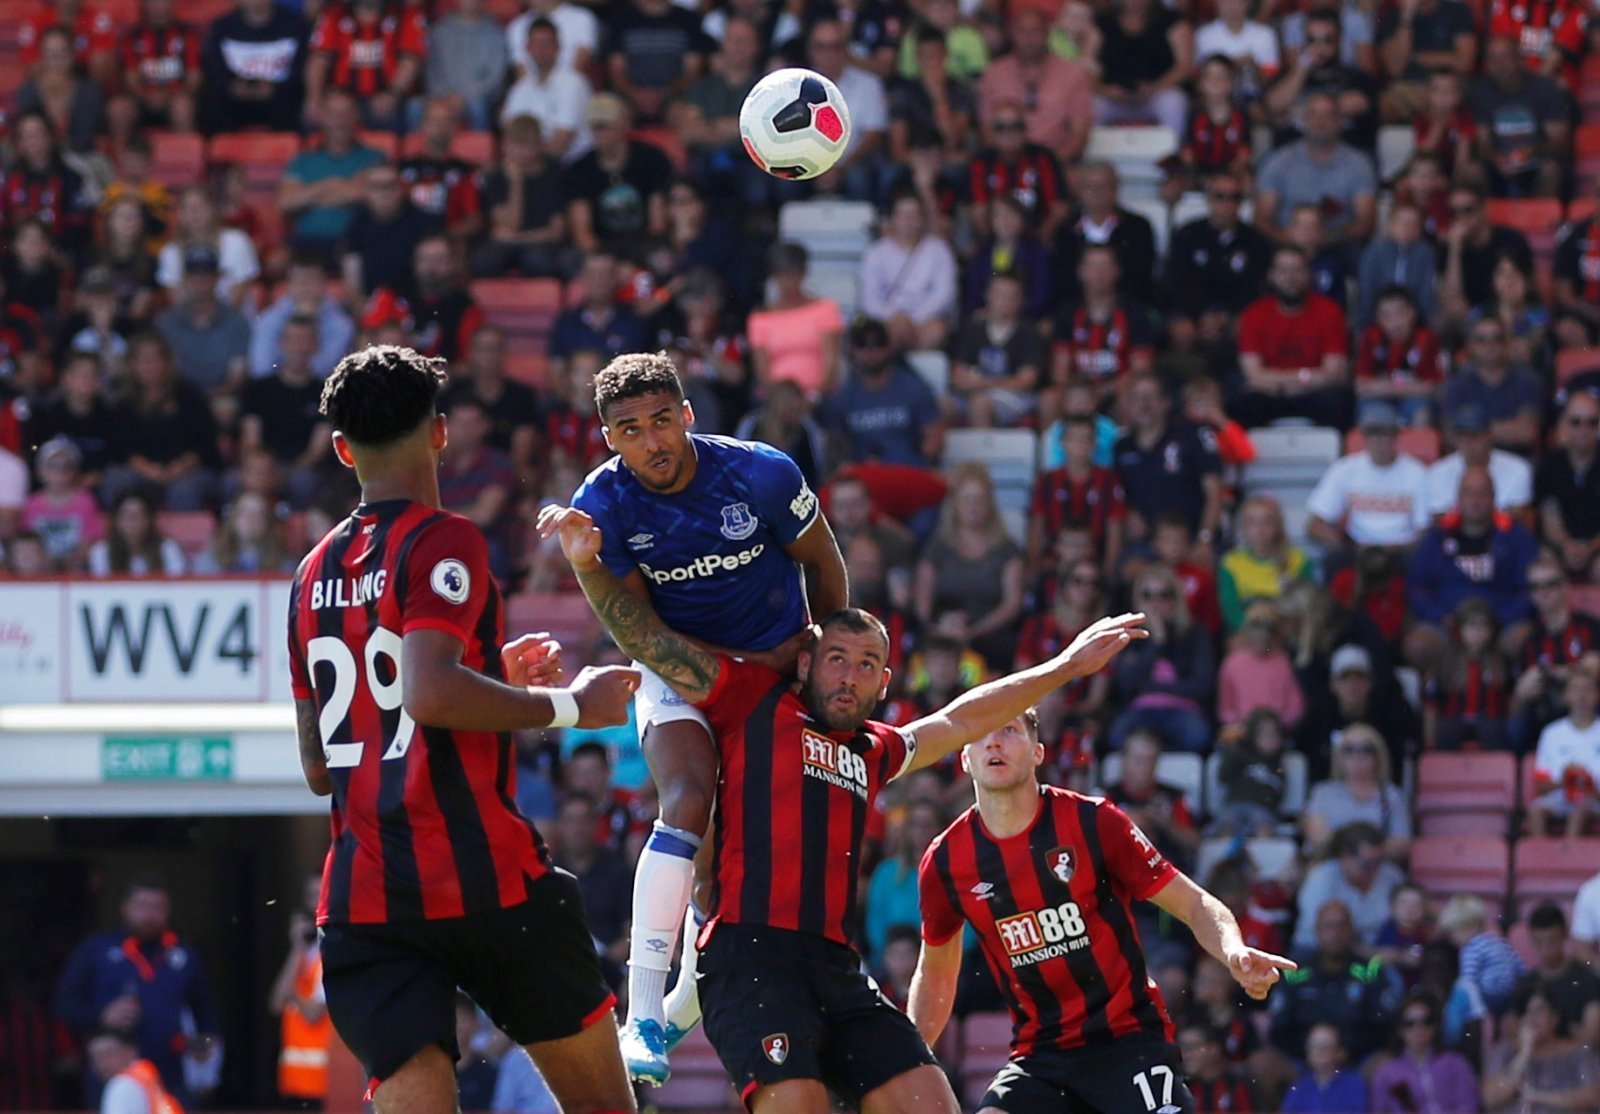 Everton: Dominic Calvert-Lewin buoyed by first goal since March